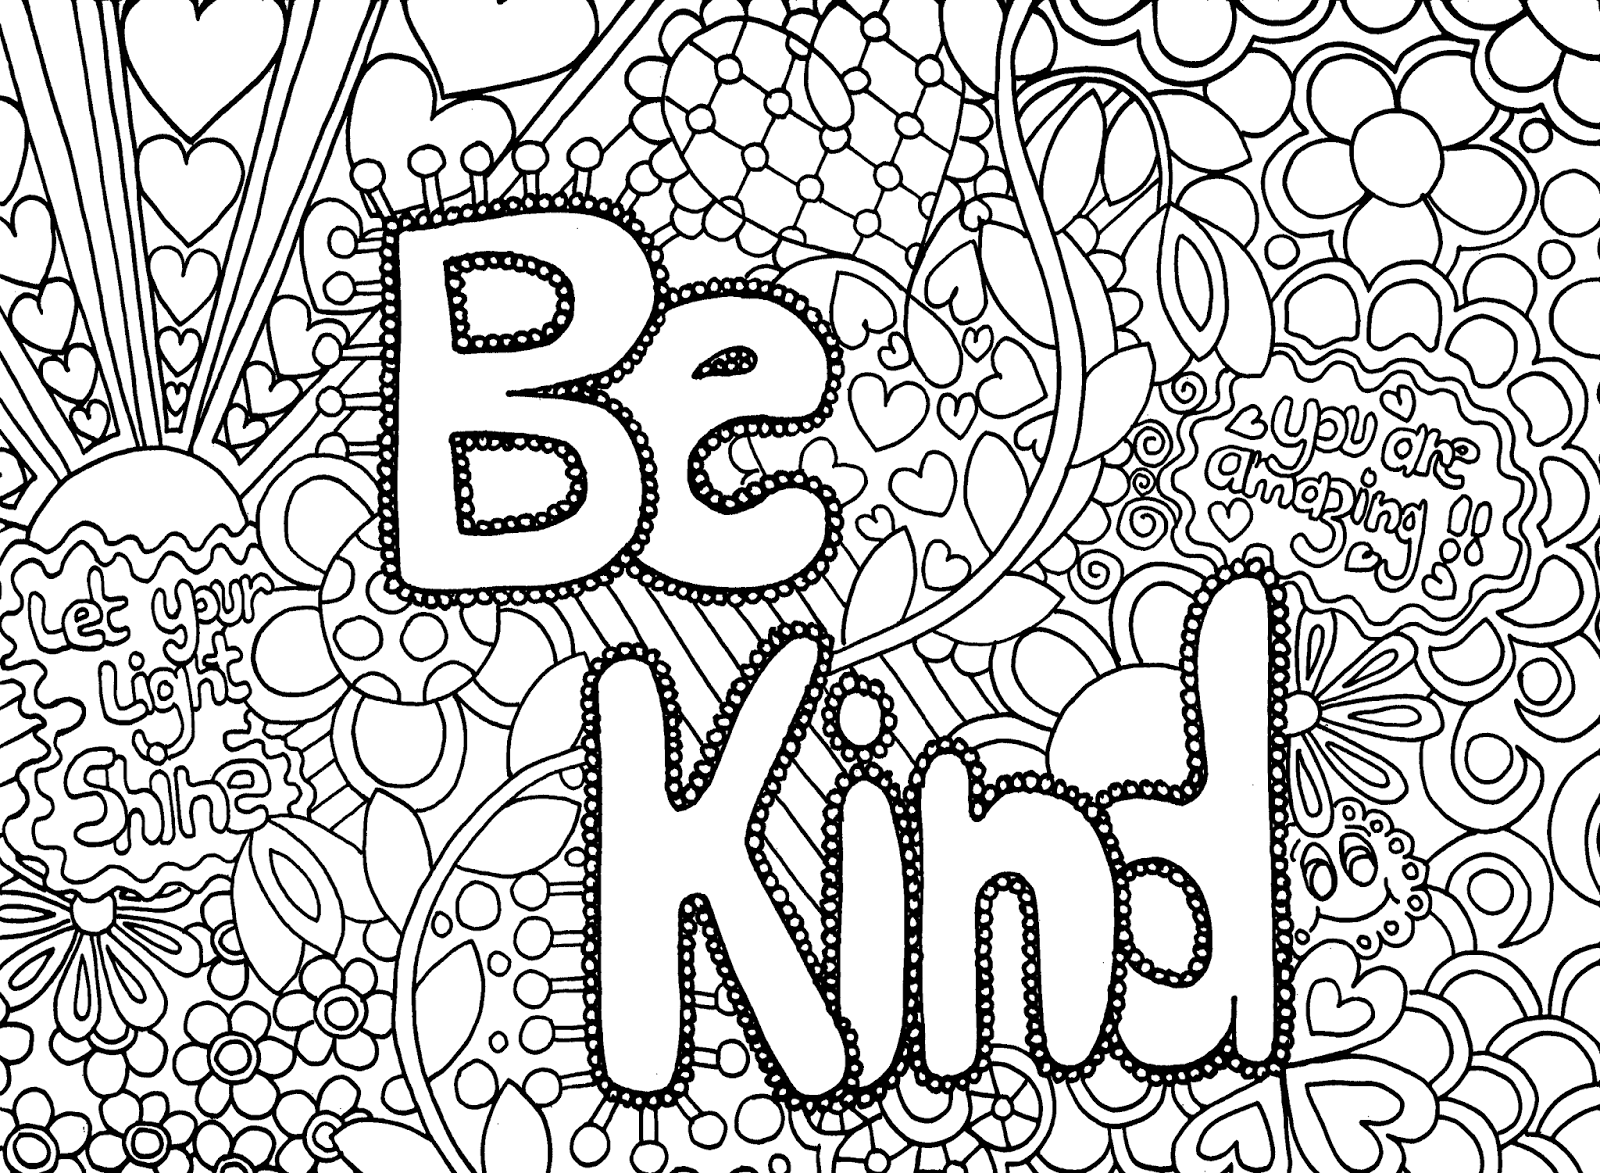 Coloring pages with quotes - Adult Printable Art Coloring Pages Coloring Panda